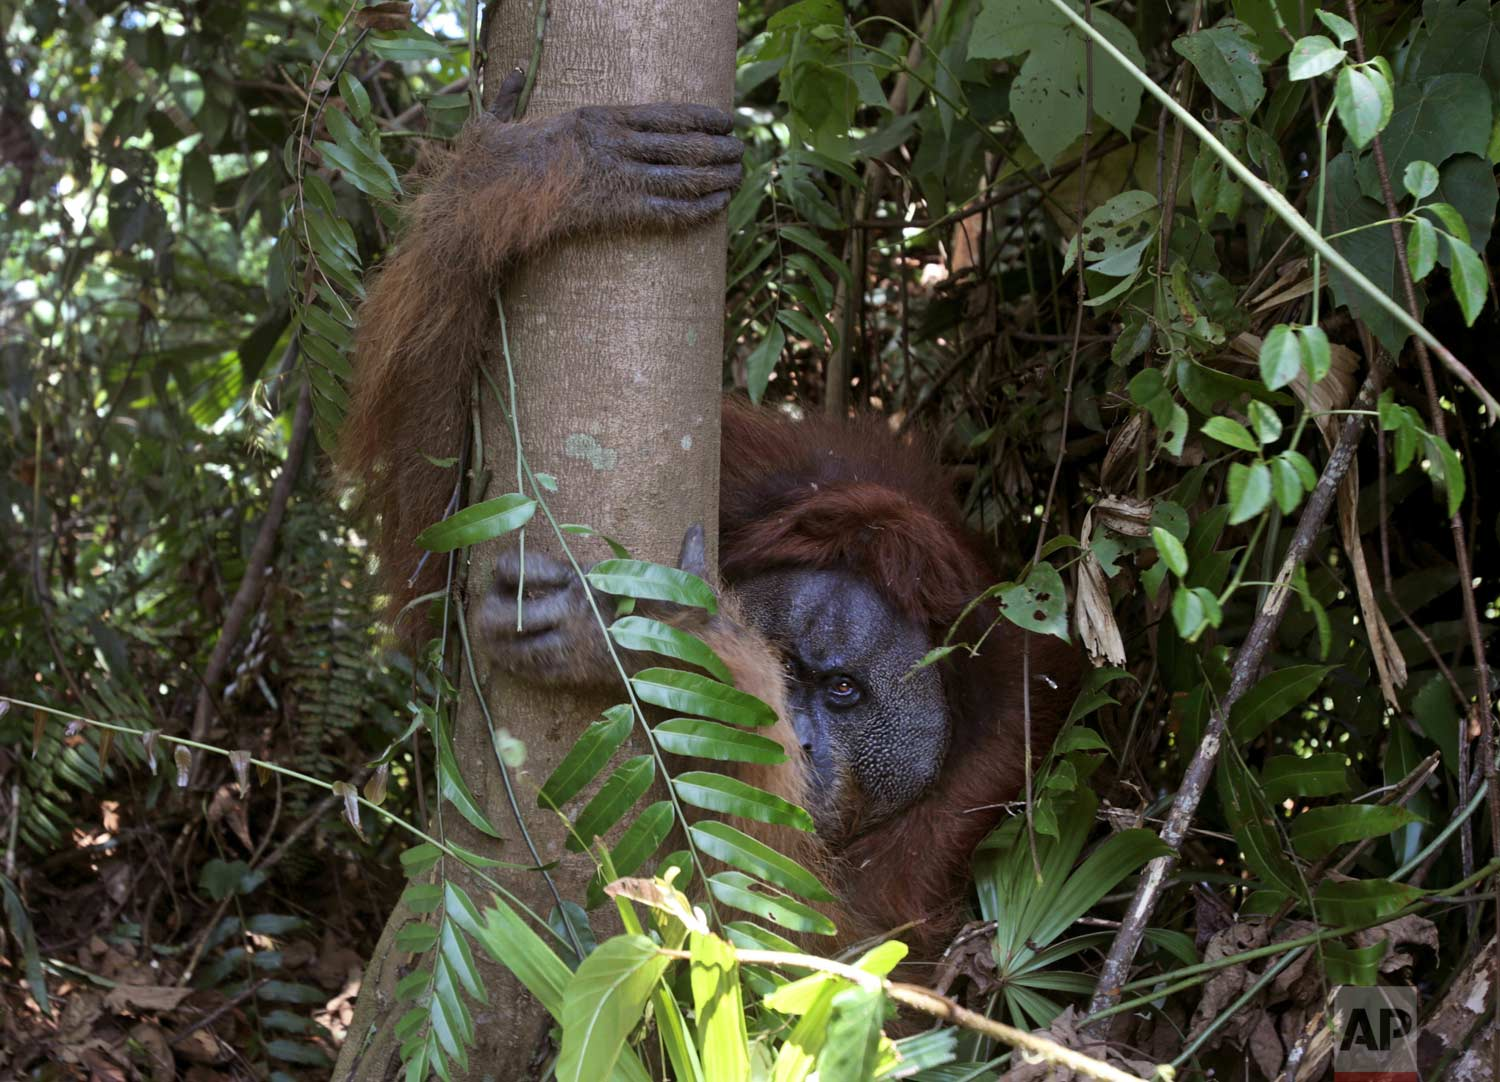 In this Thursday, Aug. 10, 2017 photo, a tranquilized male orangutan holds on to a tree as it's being rescued from a swath of forest located too close to a palm oil plantation at Tripa peat swamp in Aceh province, Indonesia. (AP Photo/Binsar Bakkara)